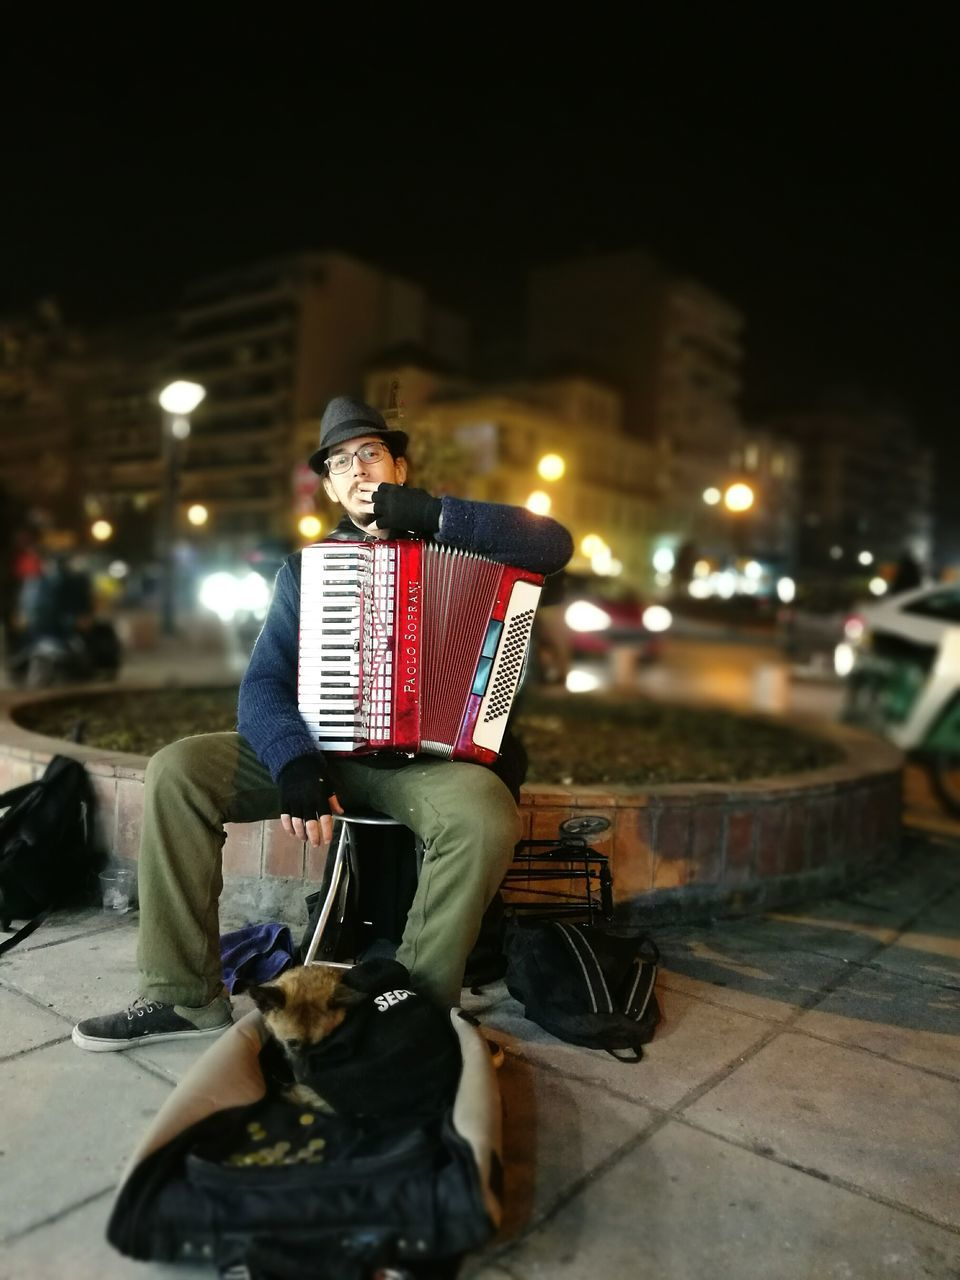 accordion, night, real people, illuminated, musical instrument, music, young adult, one person, arts culture and entertainment, lifestyles, full length, young men, outdoors, musician, leisure activity, men, city, young women, people